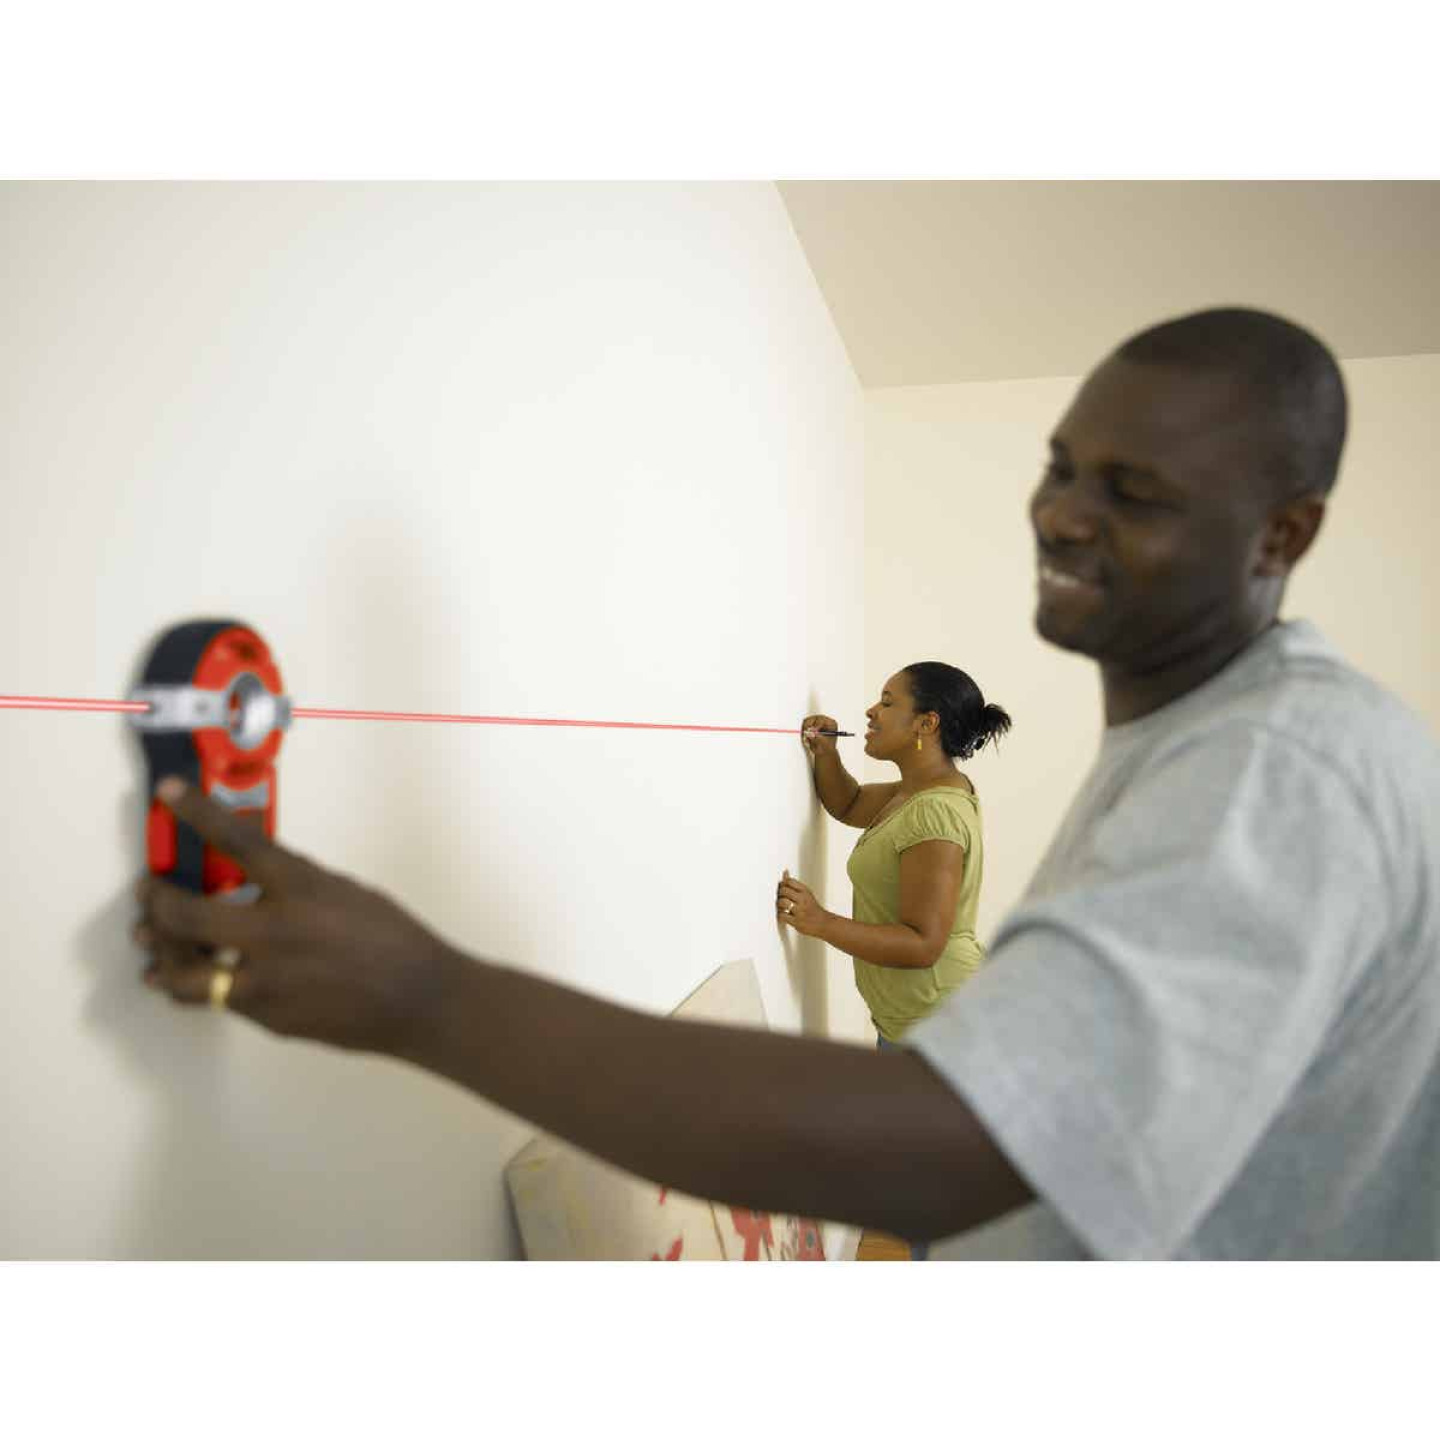 Black & Decker Bullseye 20 Ft. Self-Leveling Line Laser Level with Stud Sensor Image 6